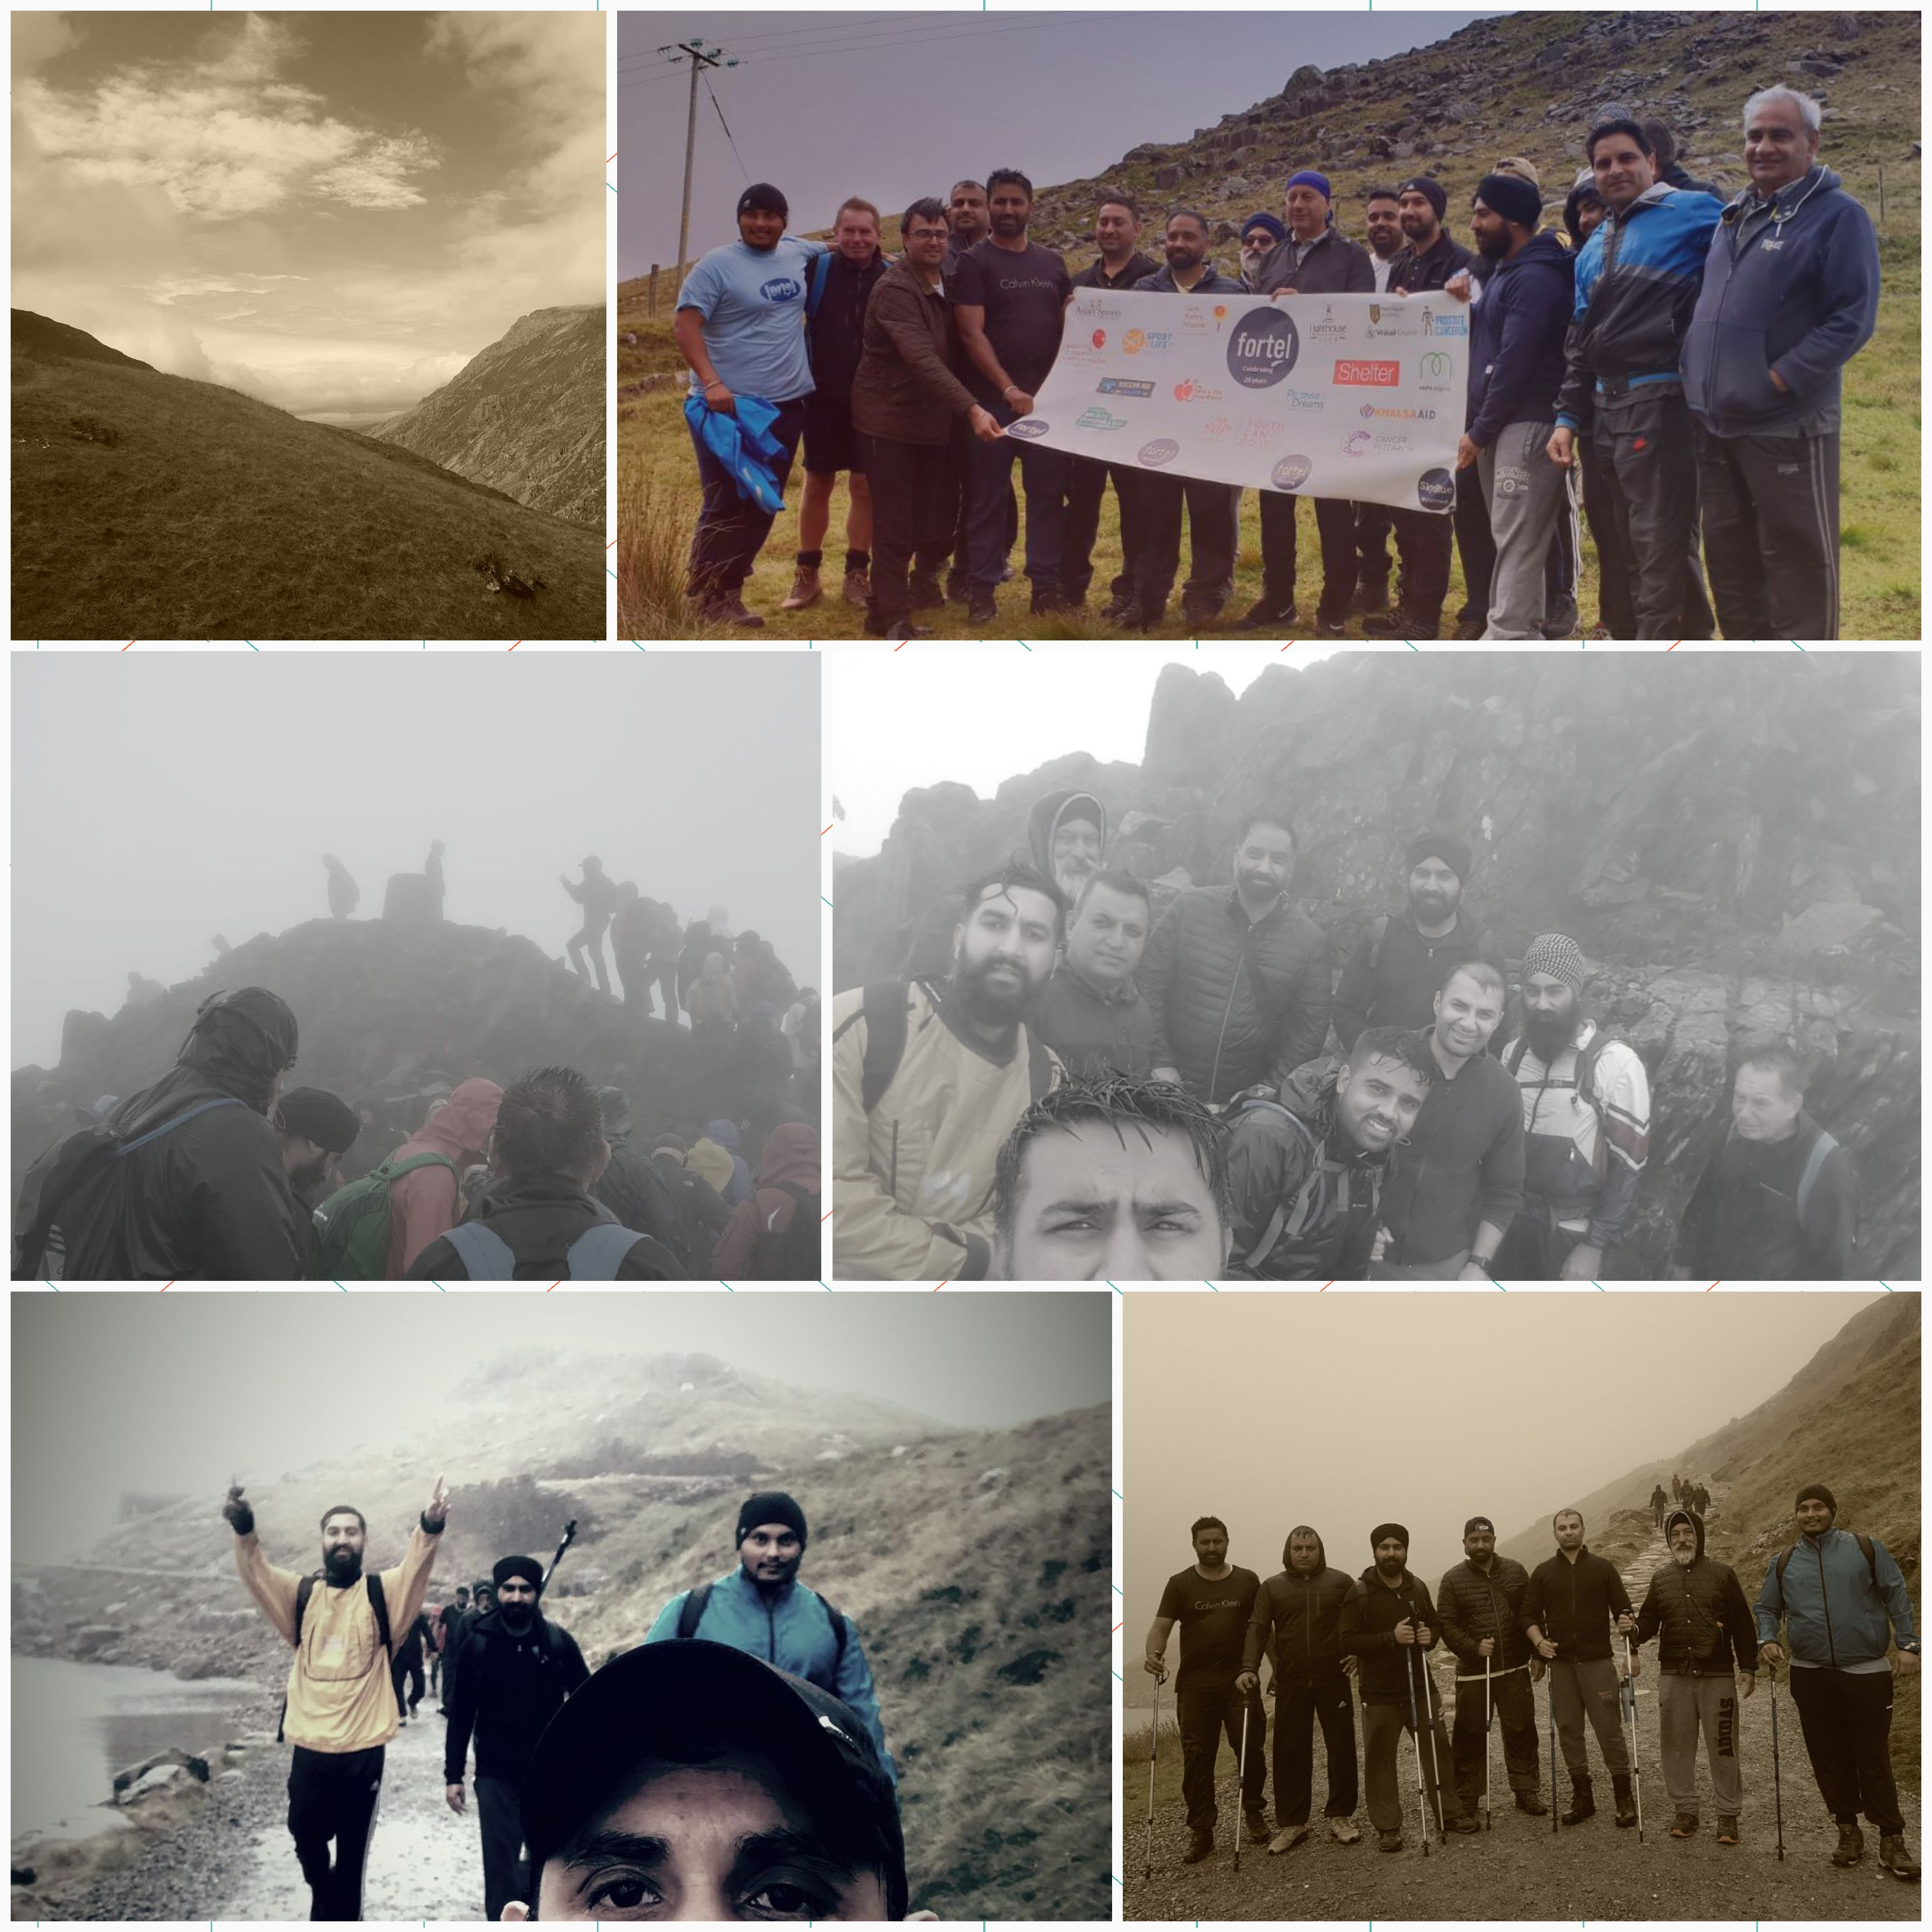 Climbing Mount Snowdon For The Lighthouse Club Charity